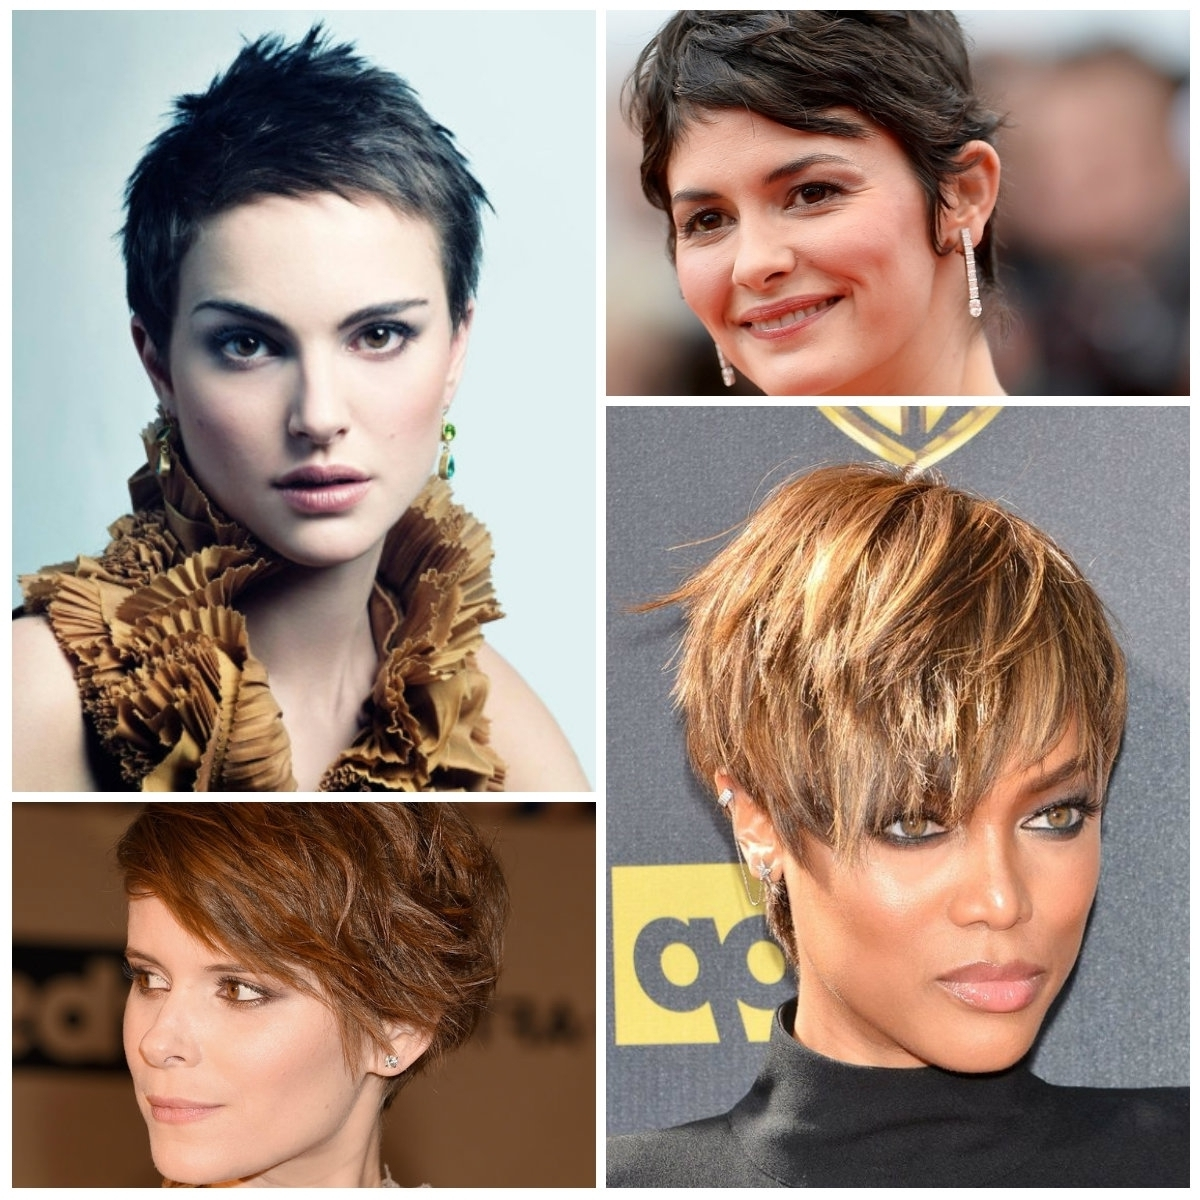 Funky Hairstyles For Medium Hair 2017 Pixie Haircuts – Haircuts For Most Current Pixie Hairstyles For Thick Coarse Hair (View 12 of 16)